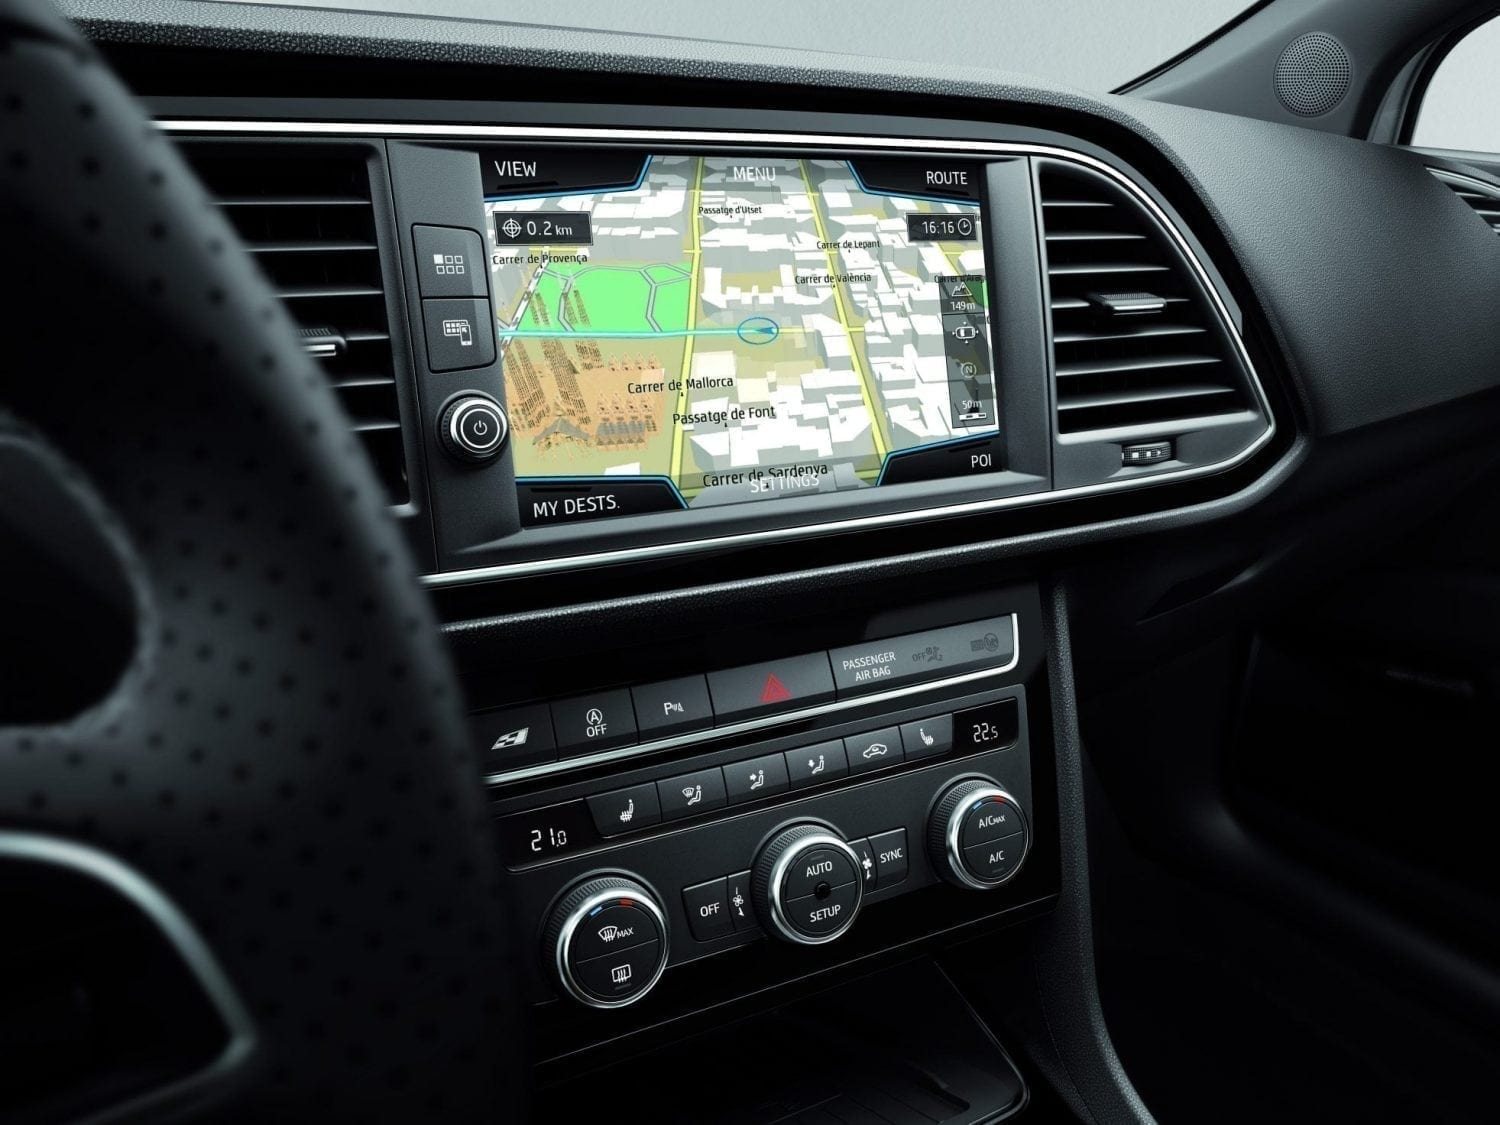 SEAT Leon interieur dashboard